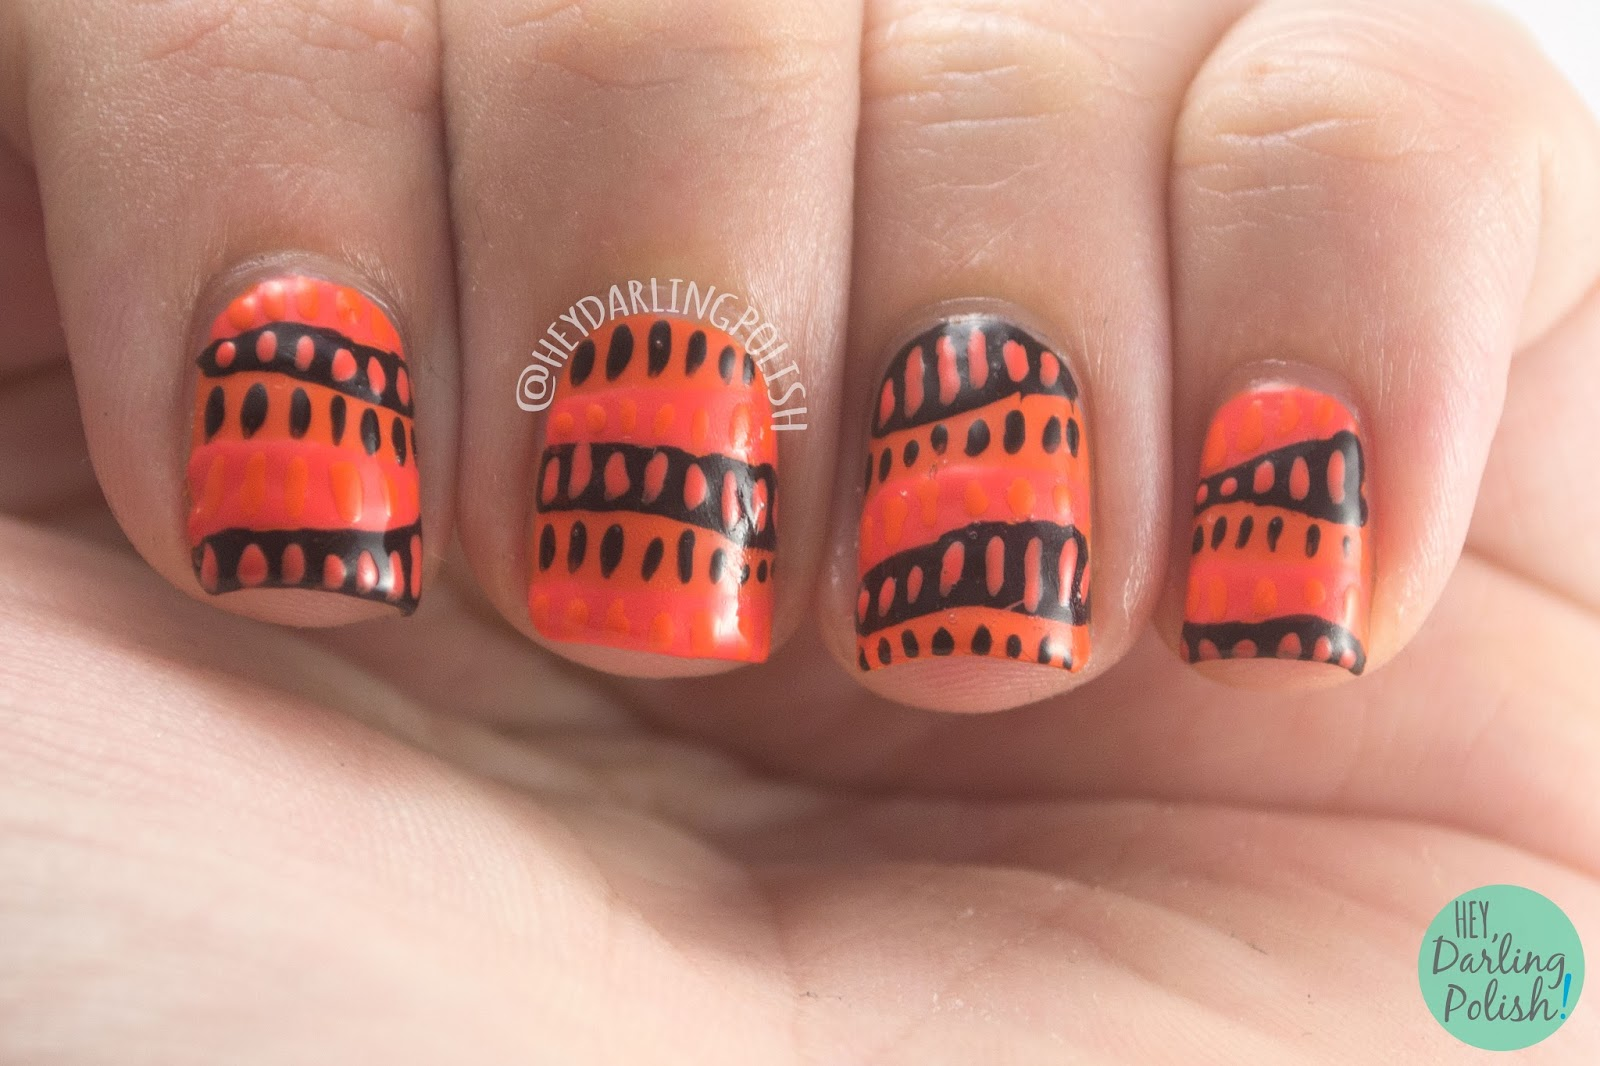 nails, nail polish, nail art, orange, orange nails, 31dc2014, 31 day challenge, hey darling polish, freehand, pattern